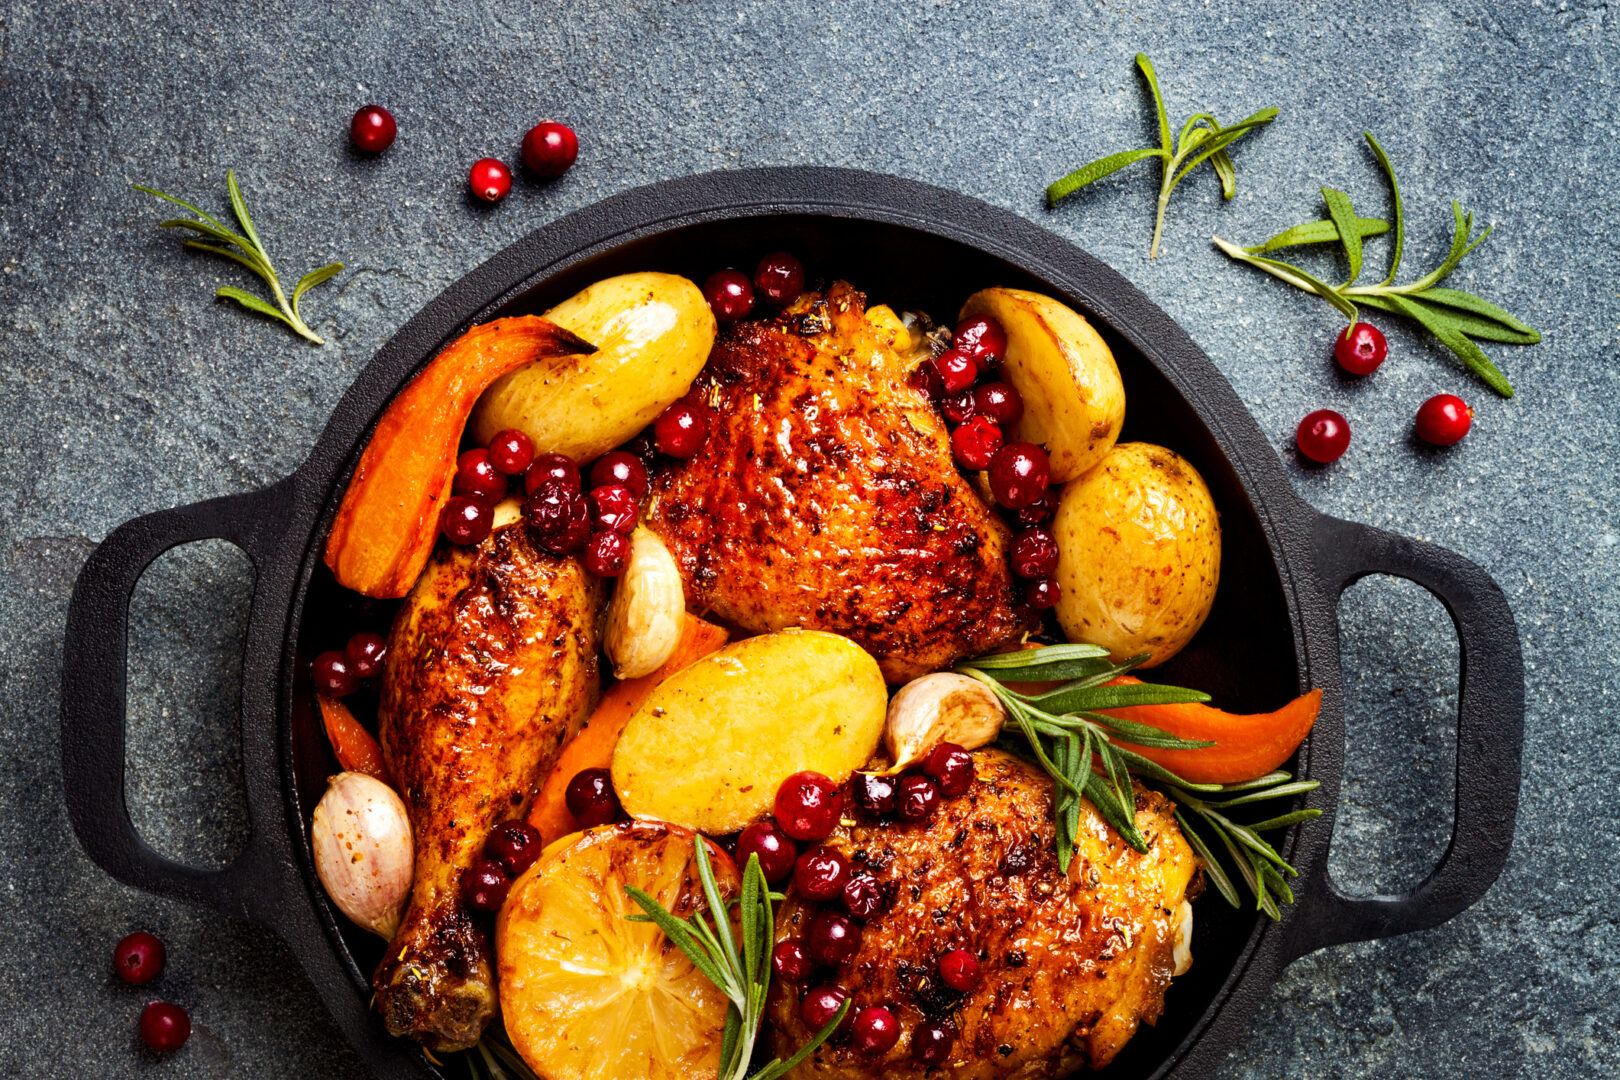 Healthy Chicken Recipes: The Wondrous One-Pan Chicken and Vegetable Skillet